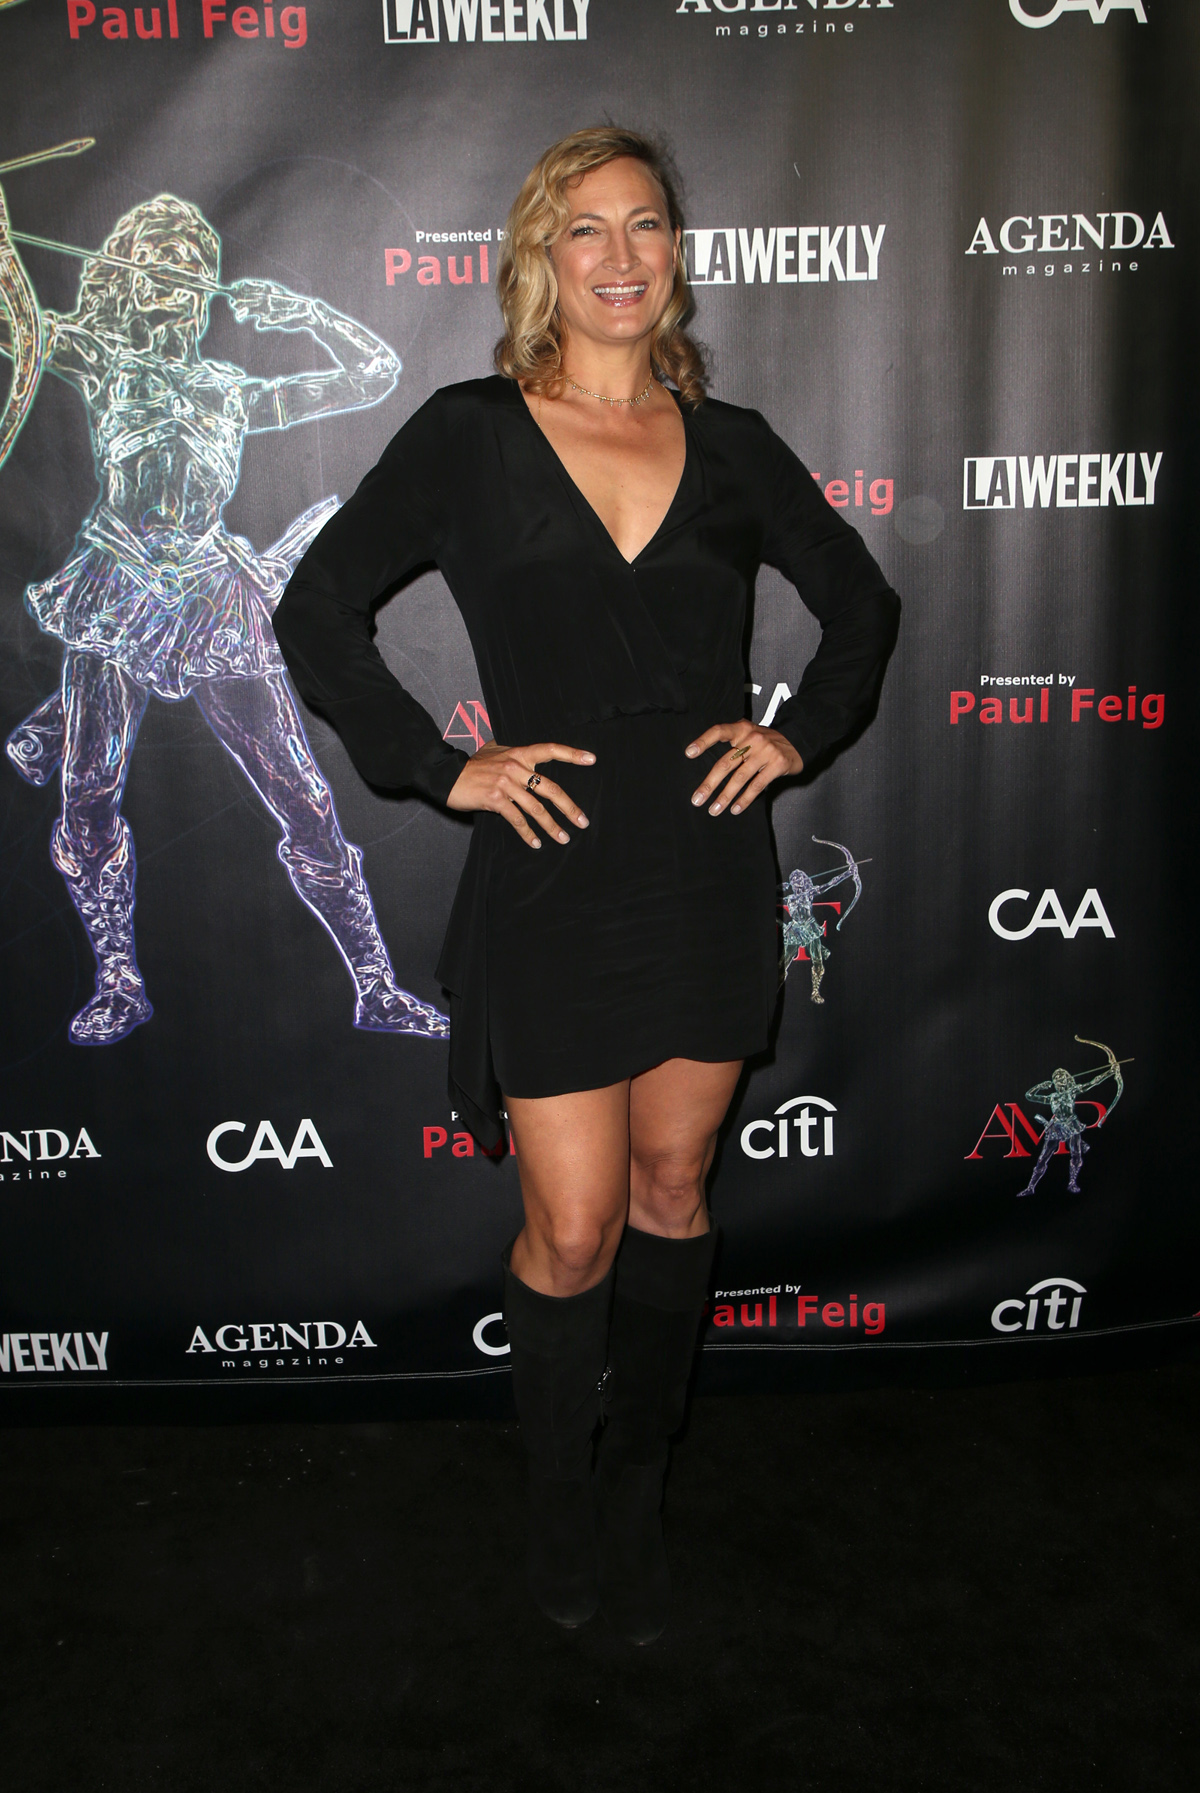 BEVERLY HILLS, CA - APRIL 26: Zoe Bell, at the 2018 Artemis Awards Gala at the Ahrya Fine Arts Theater in Beverly Hills, California on April 26, 2018. Credit: Faye Sadou/MediaPunch